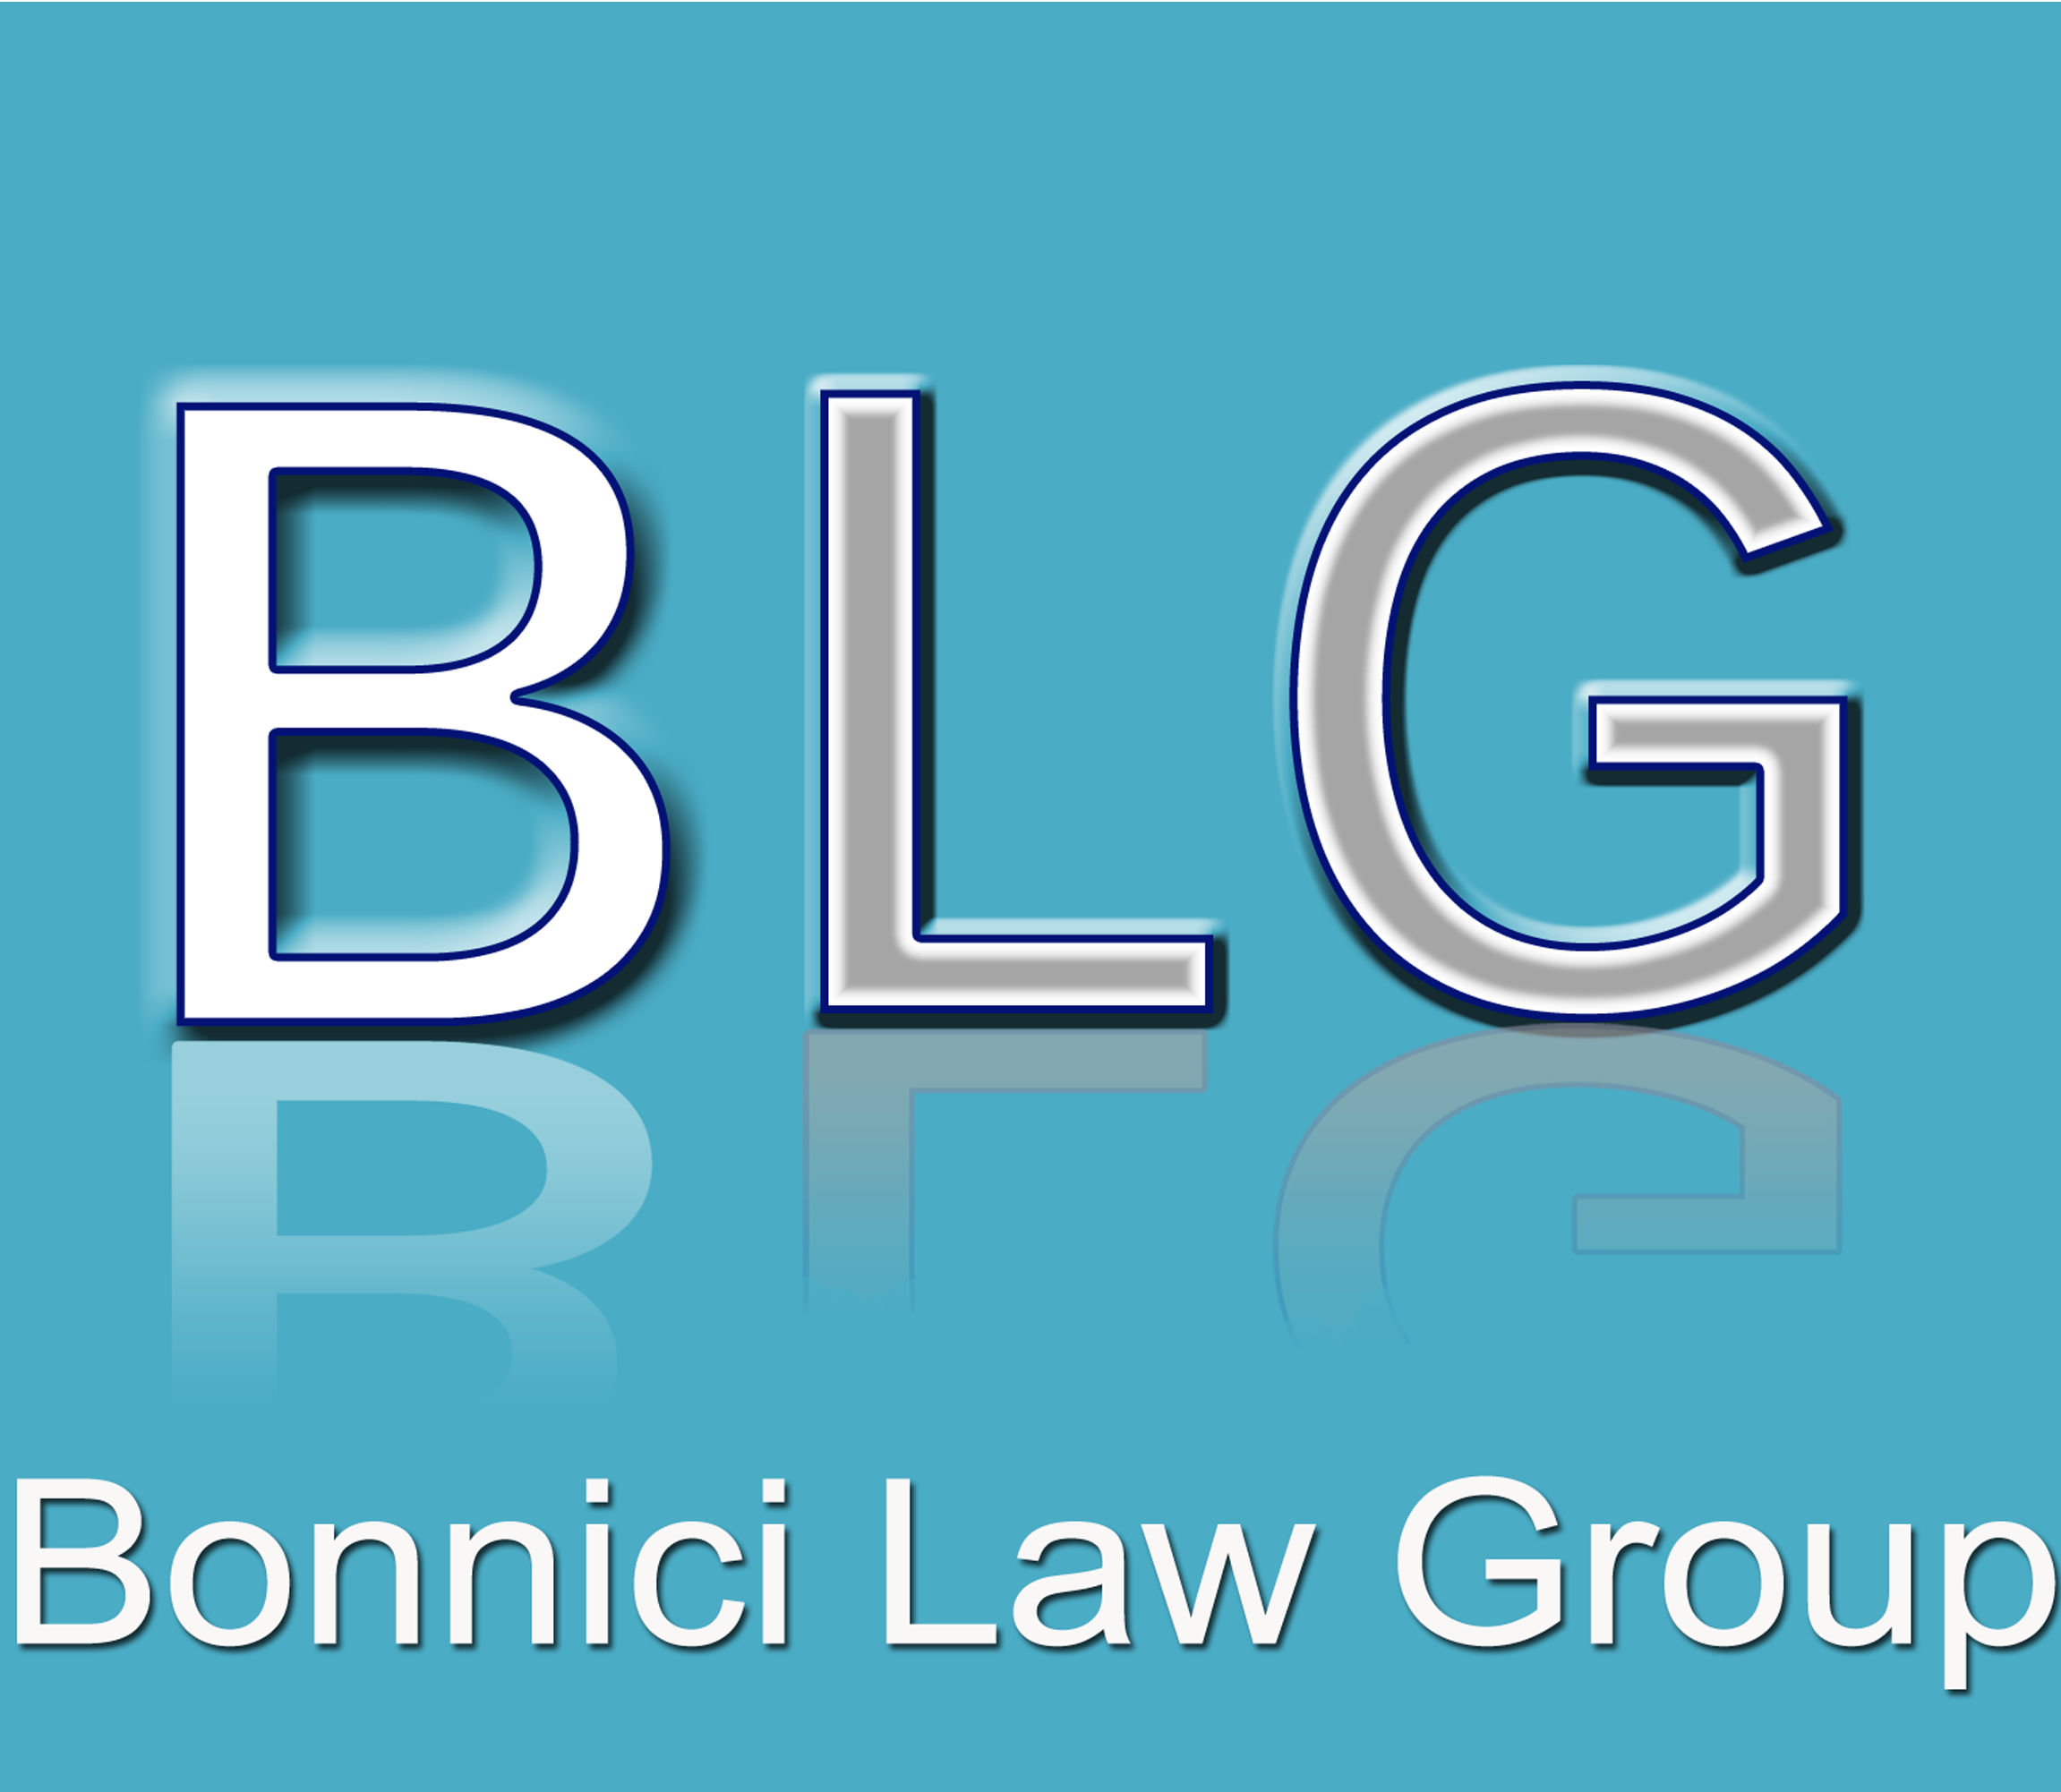 Bonnici Law Group